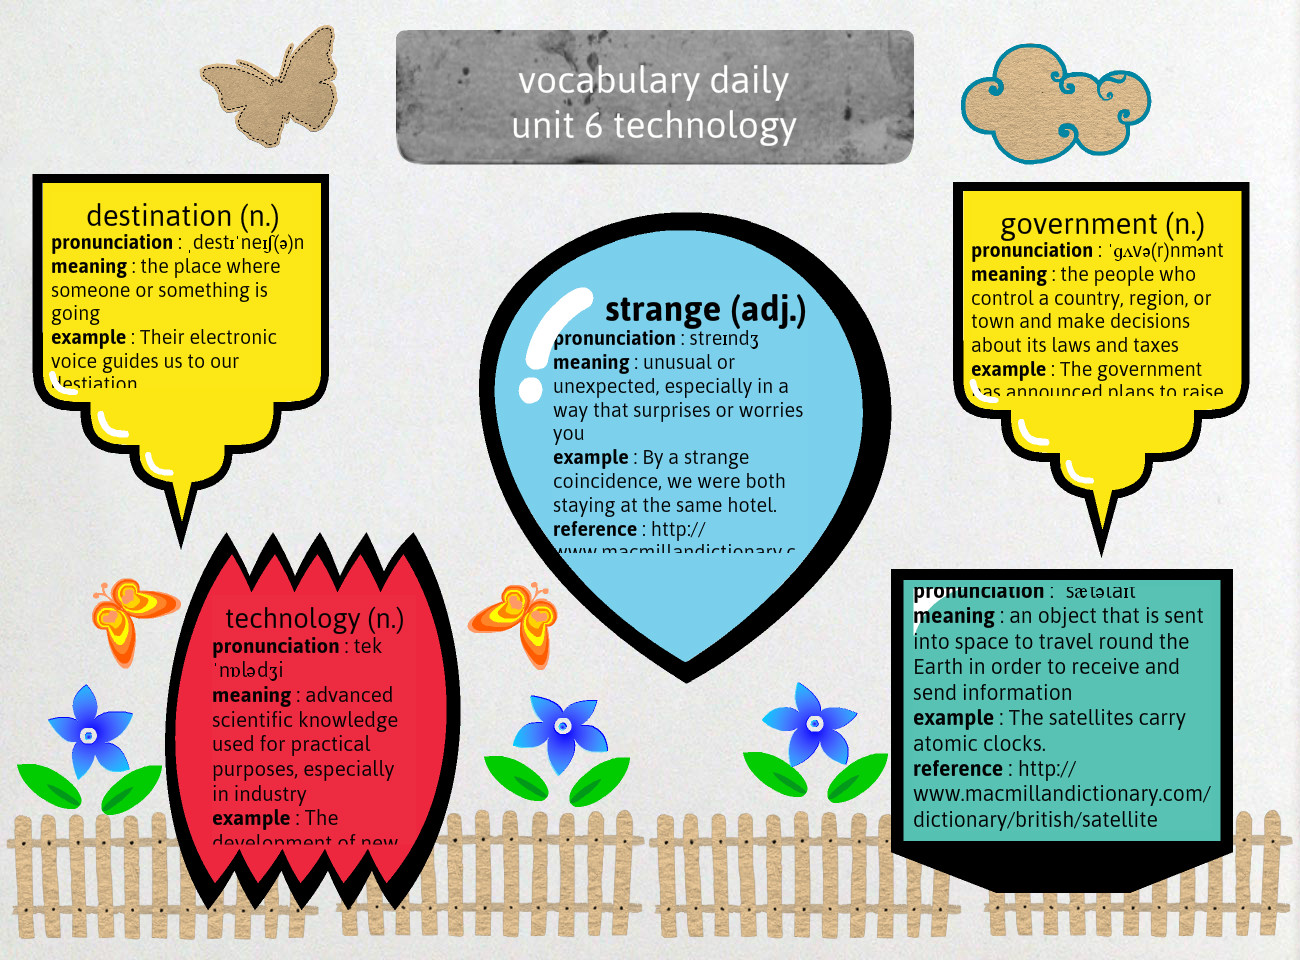 vocabulary daily unit 6 technology : text, images, music